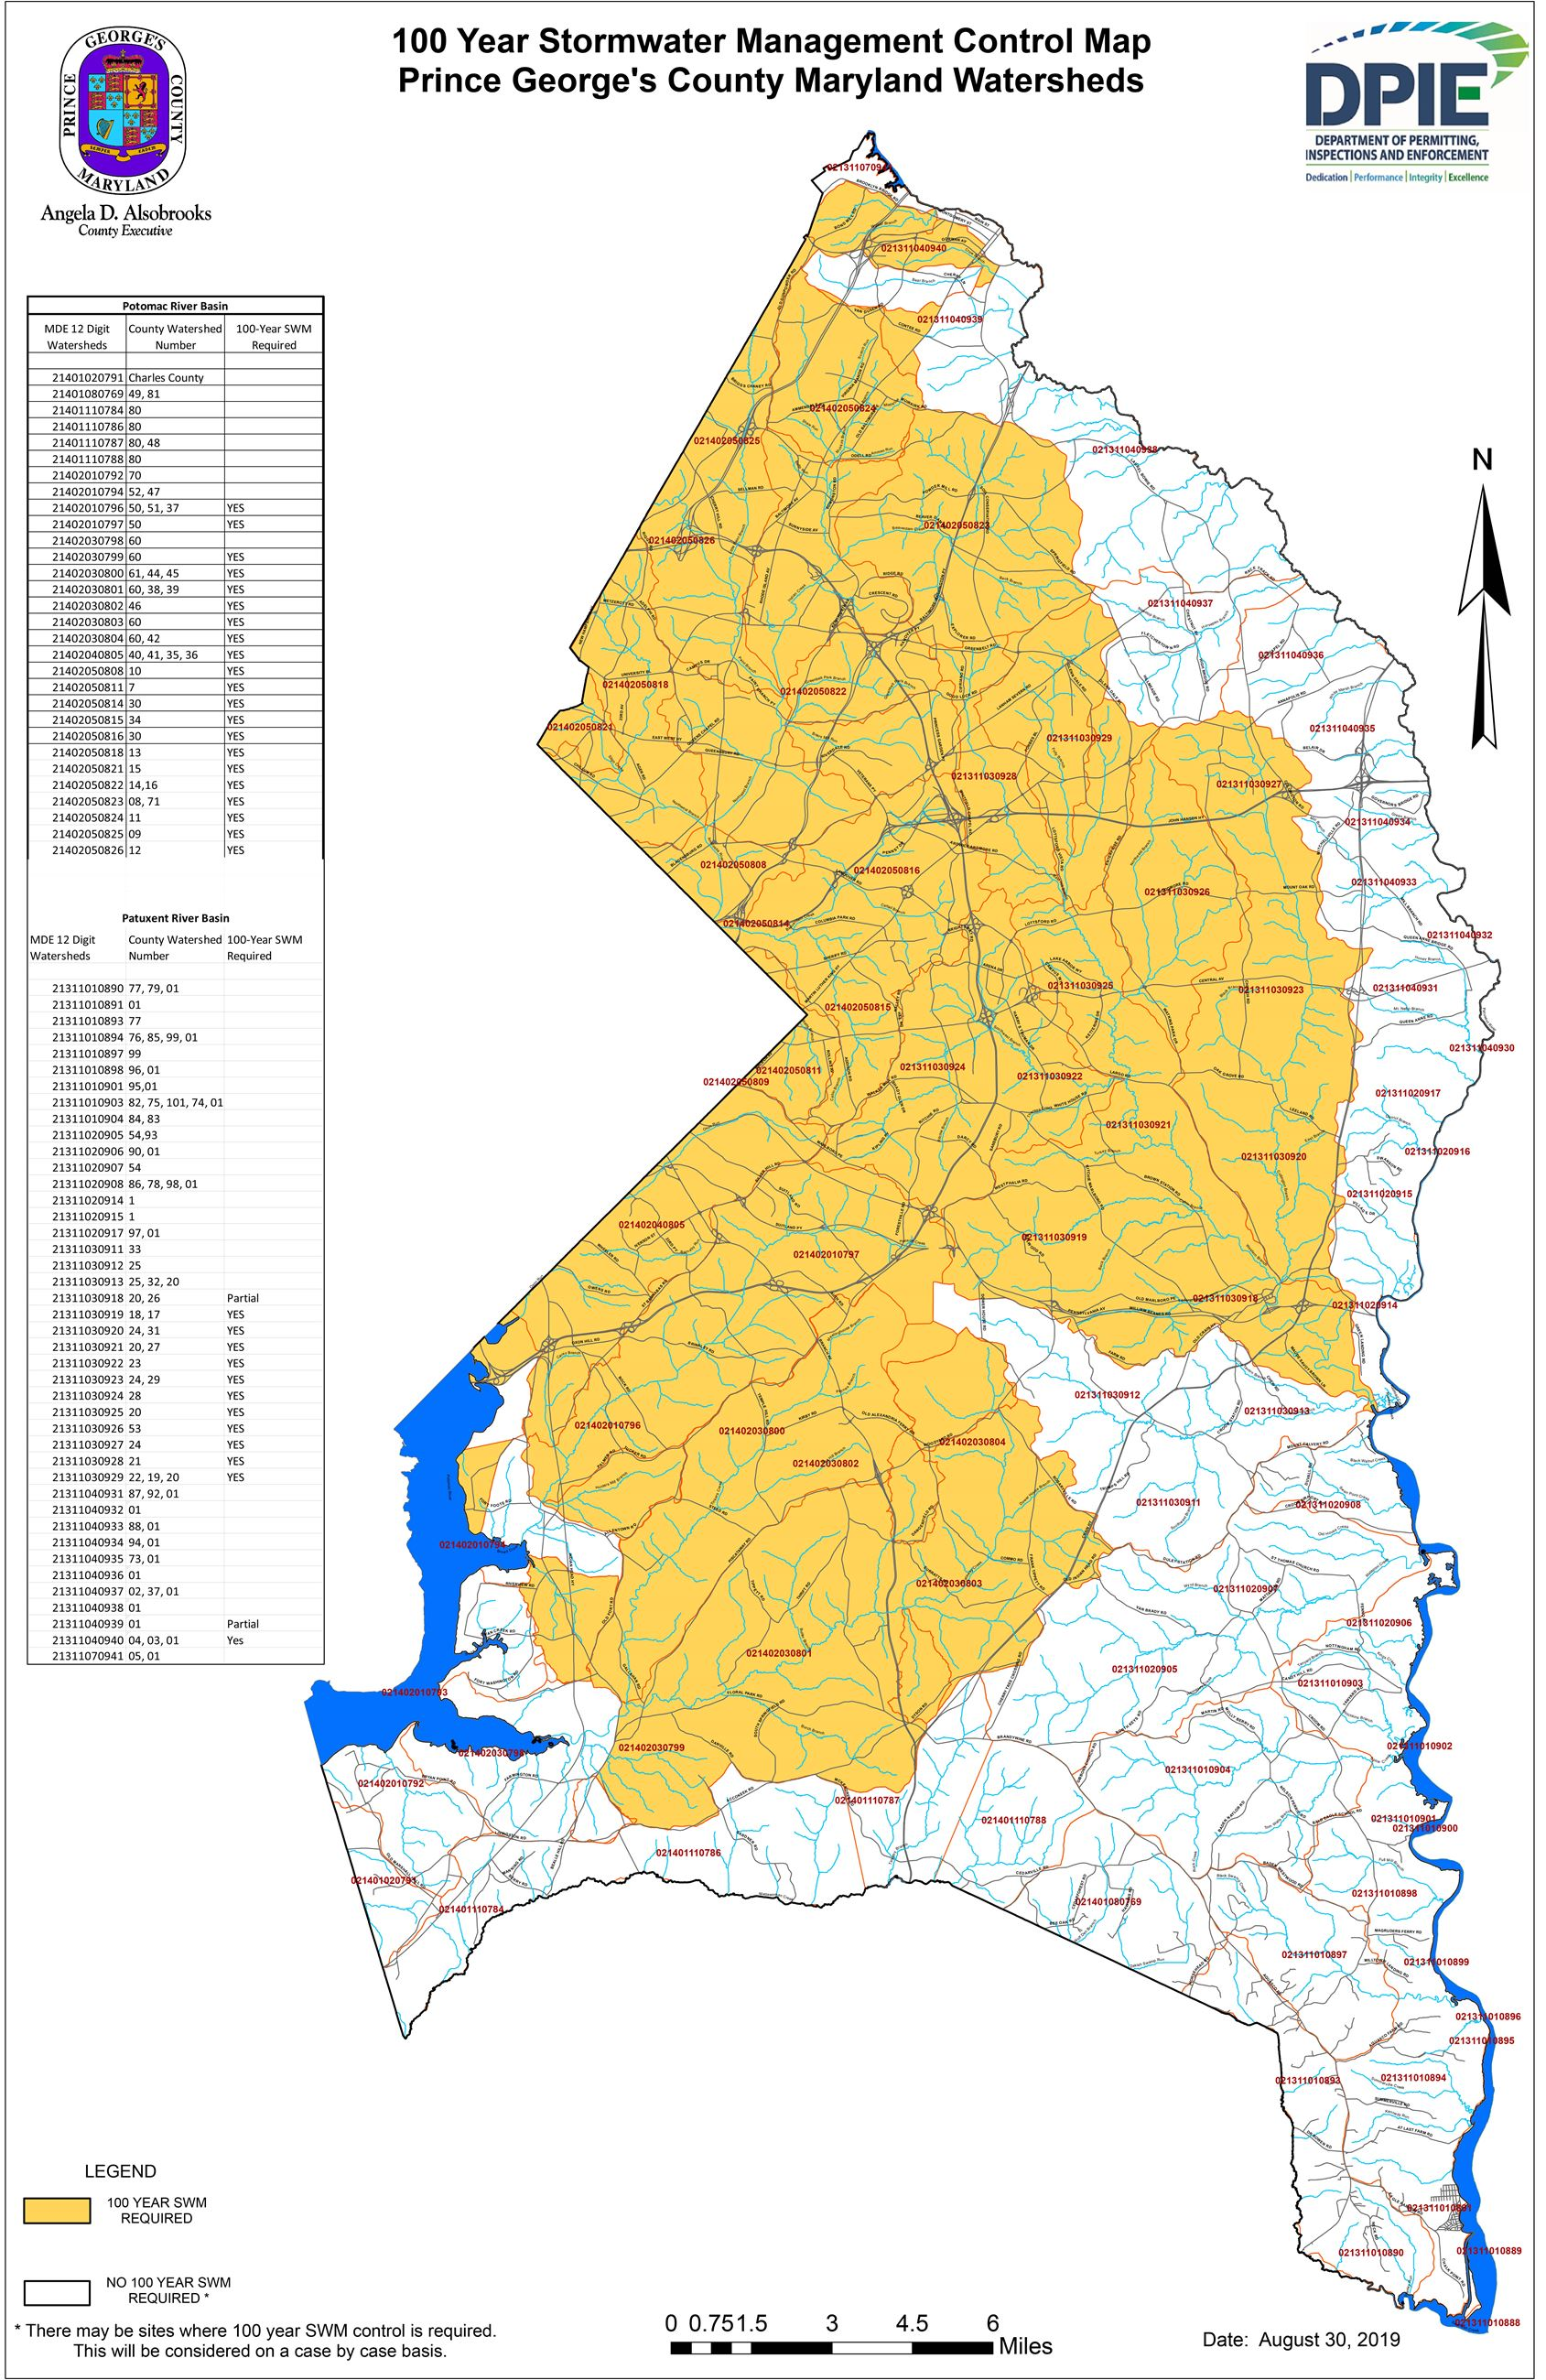 100 Year Stormwater Management Control Map, Prince Georges County Maryland Watersheds Image, Map of